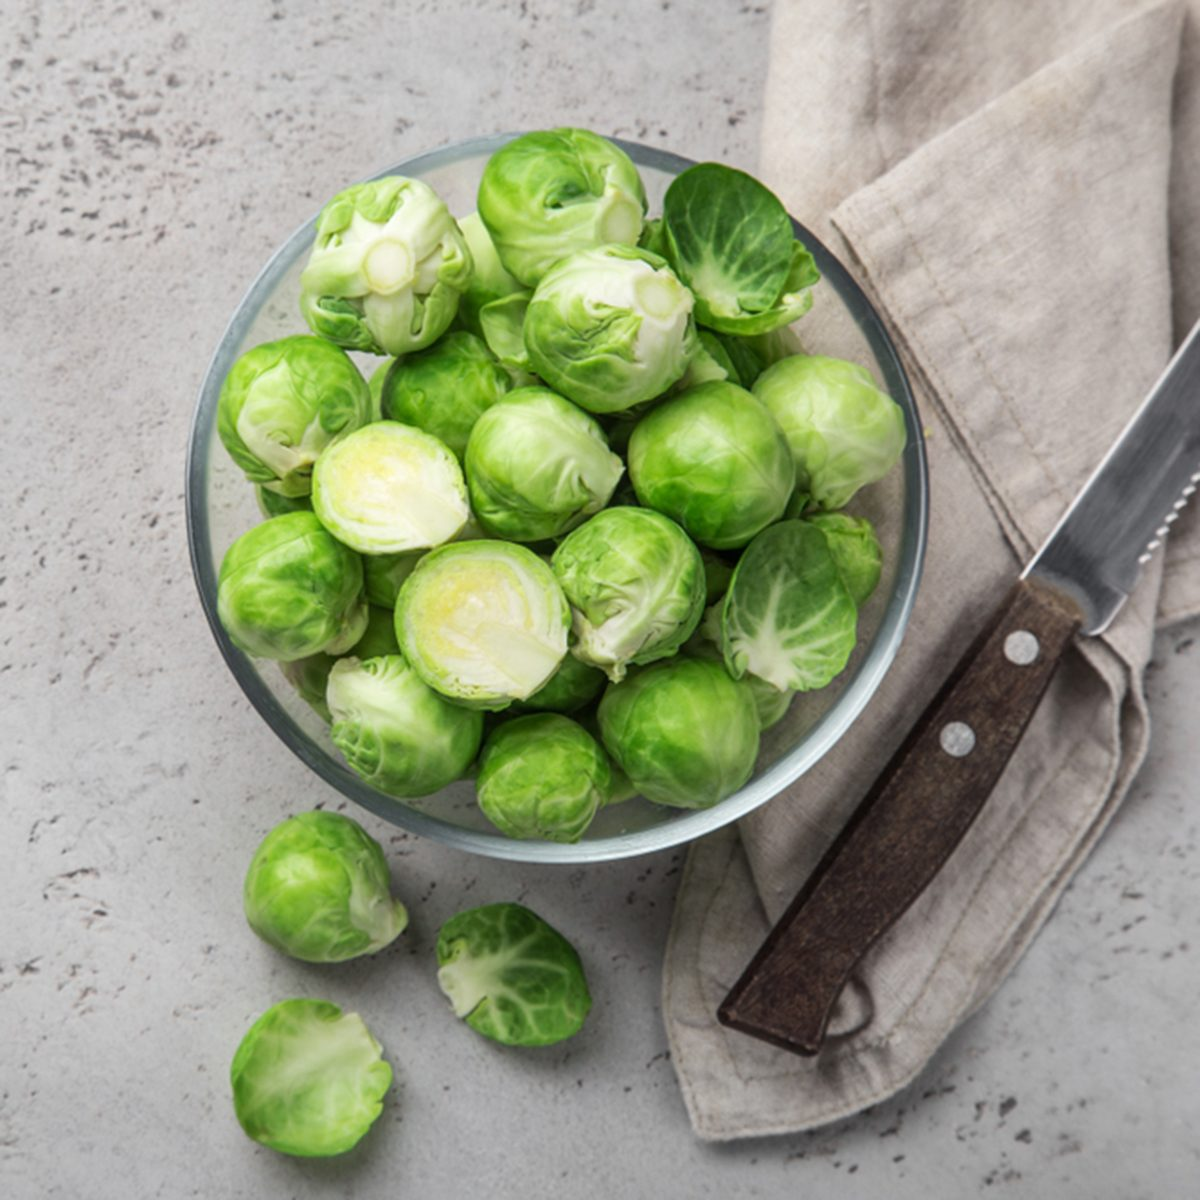 fresh raw brussel sprouts in glass bowl.